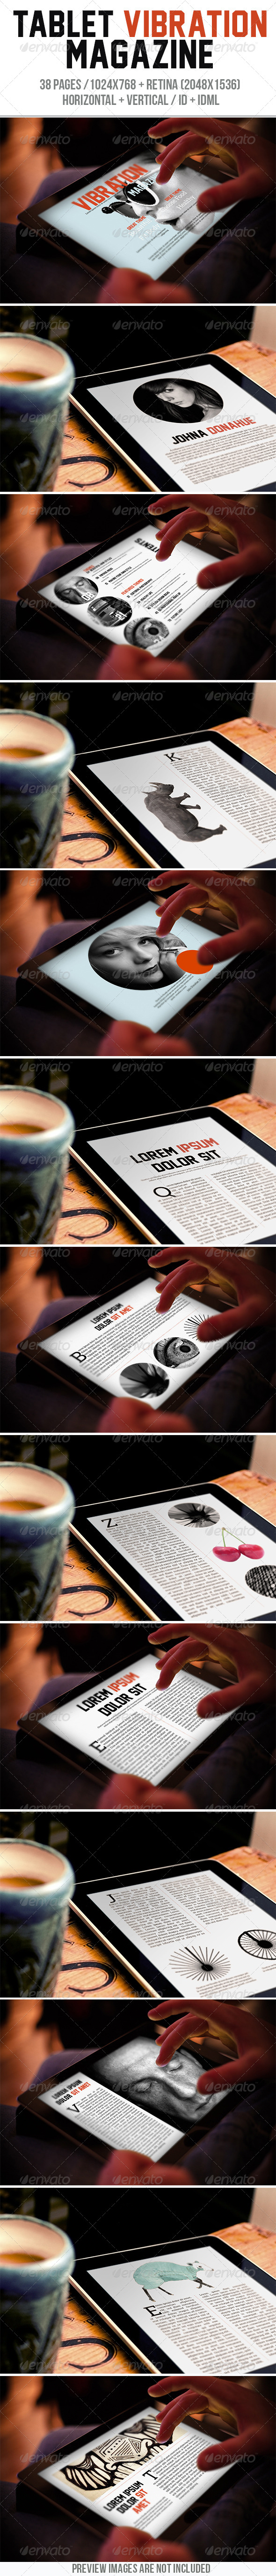 GraphicRiver Tablet Vibration Magazine 7817700